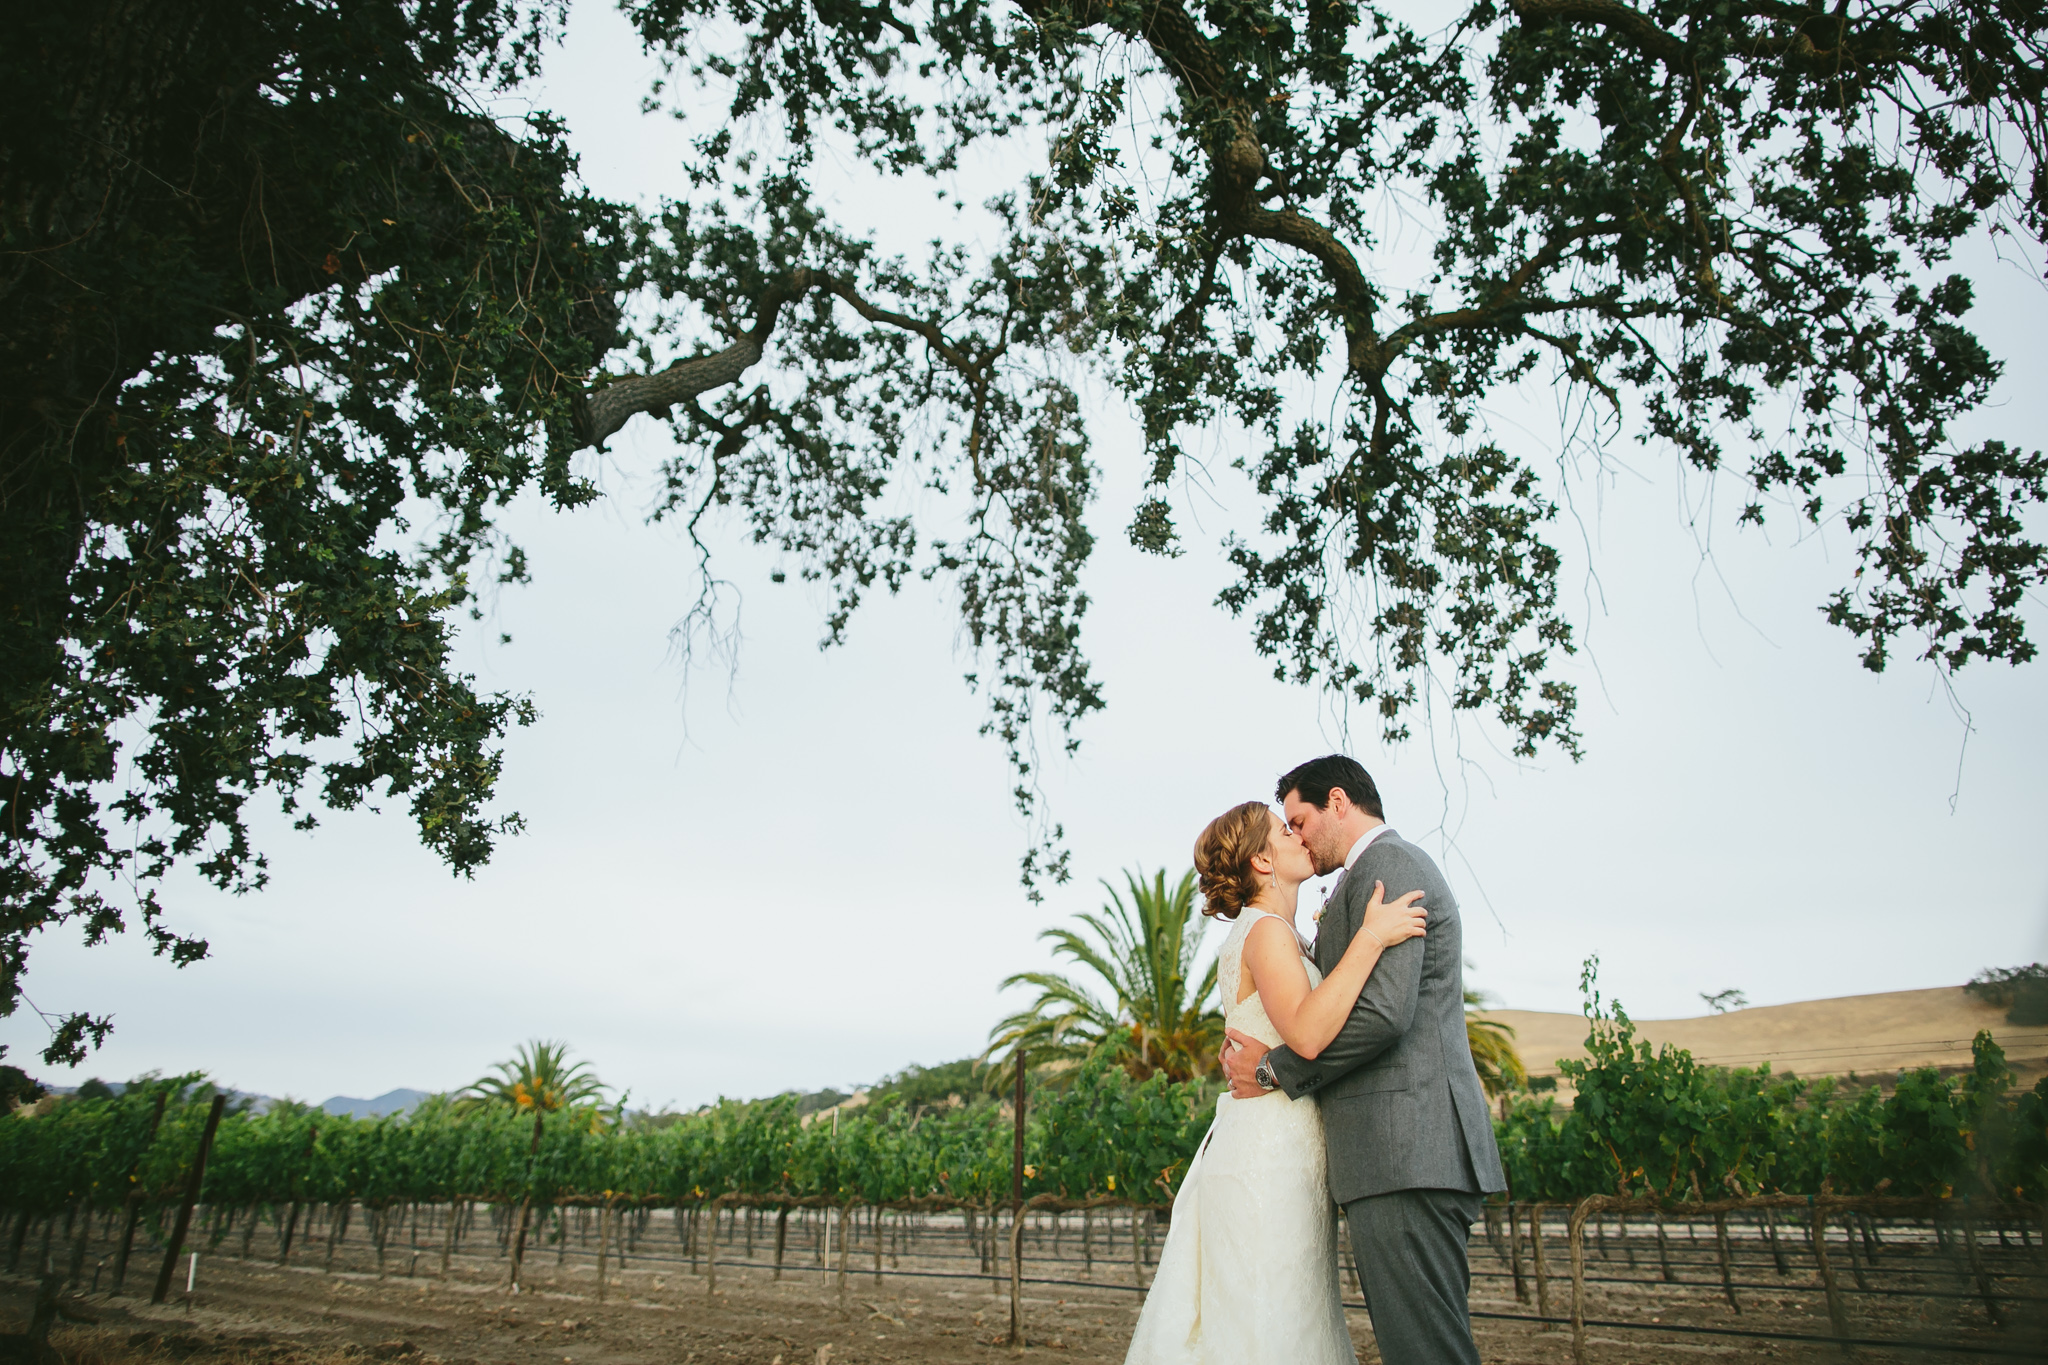 whitney+parker-WEB_BLOG-128